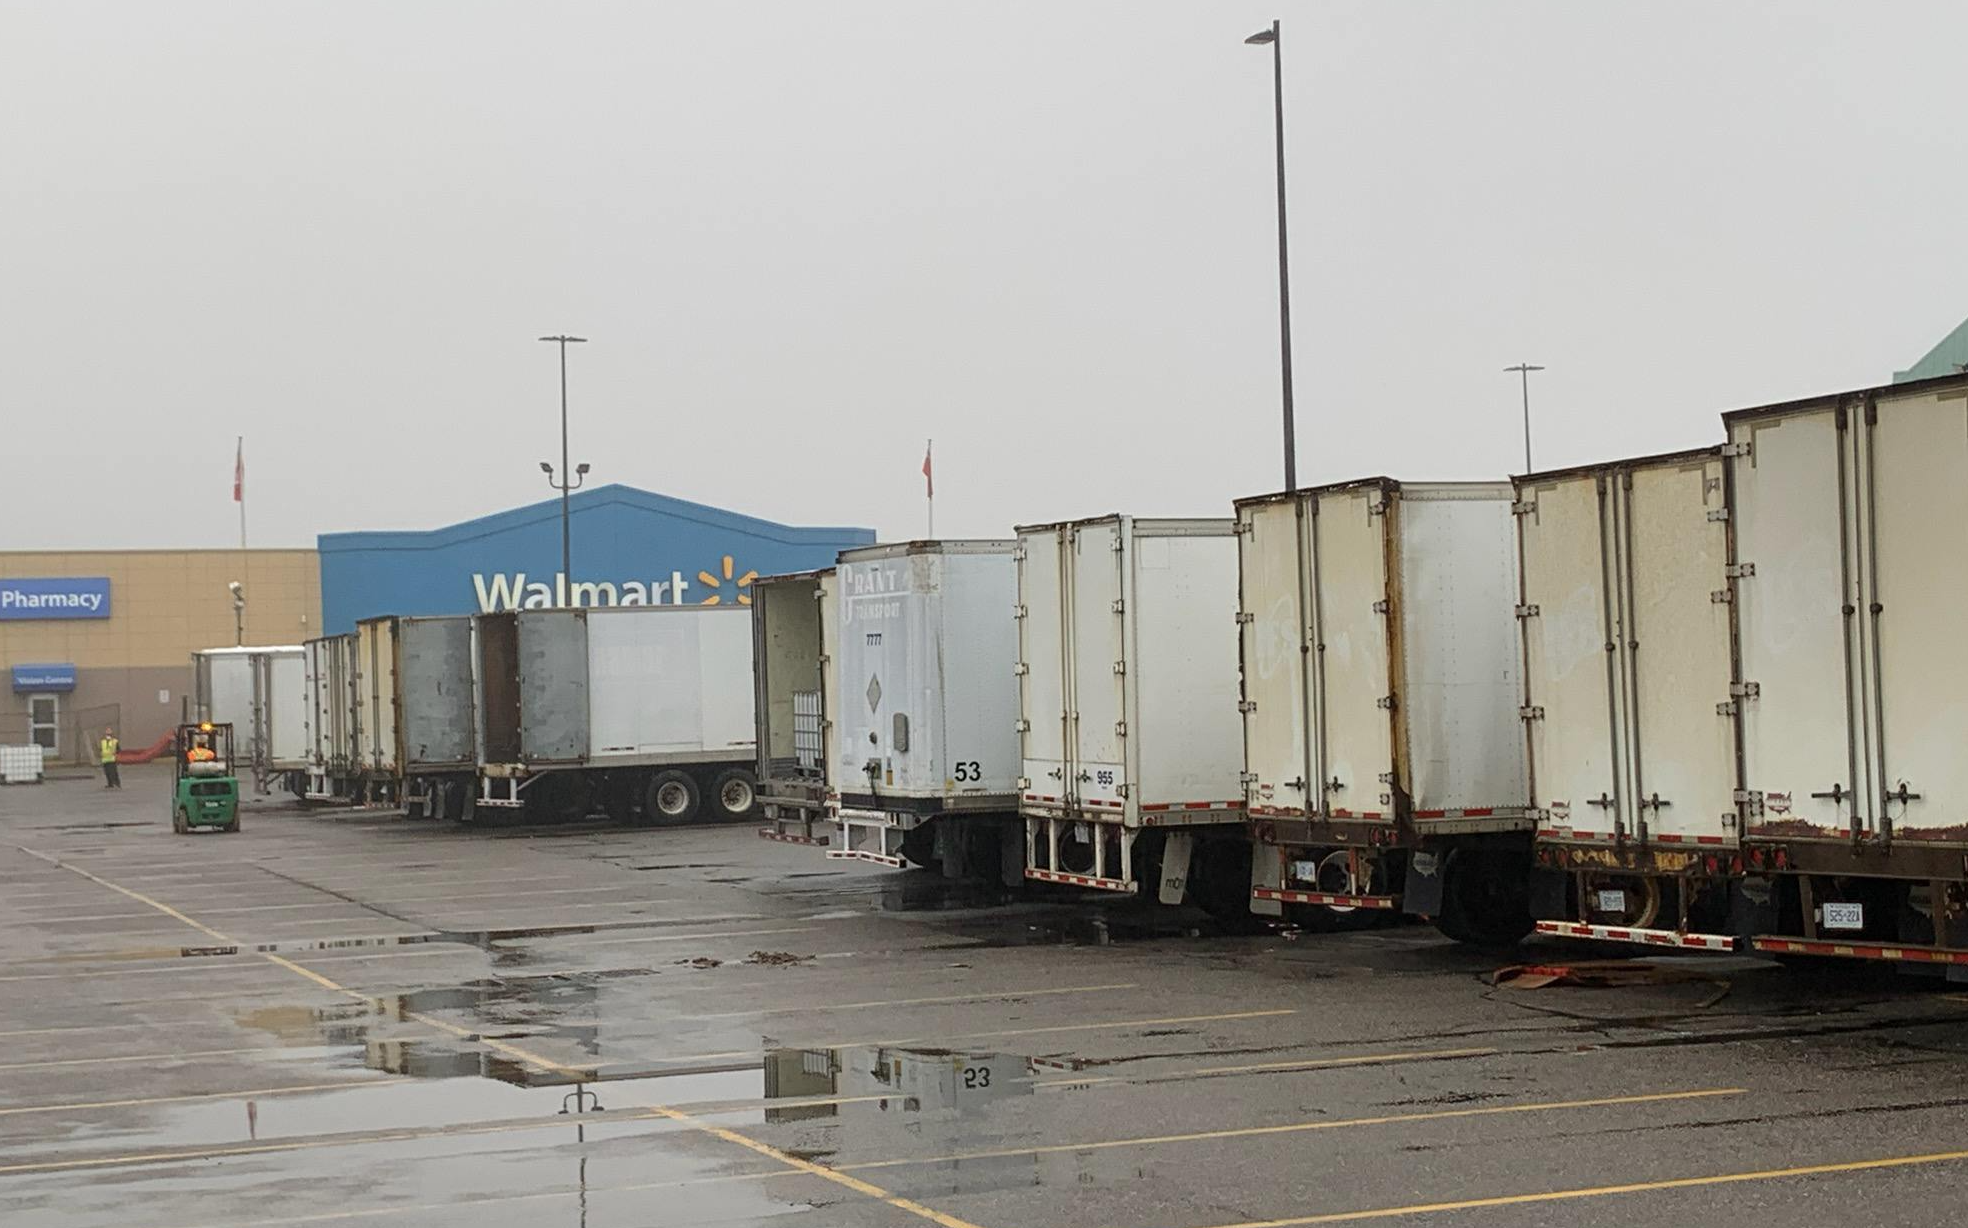 Some Walmart Services Continue To Operate Despite Fire Related Damage Baytoday Ca